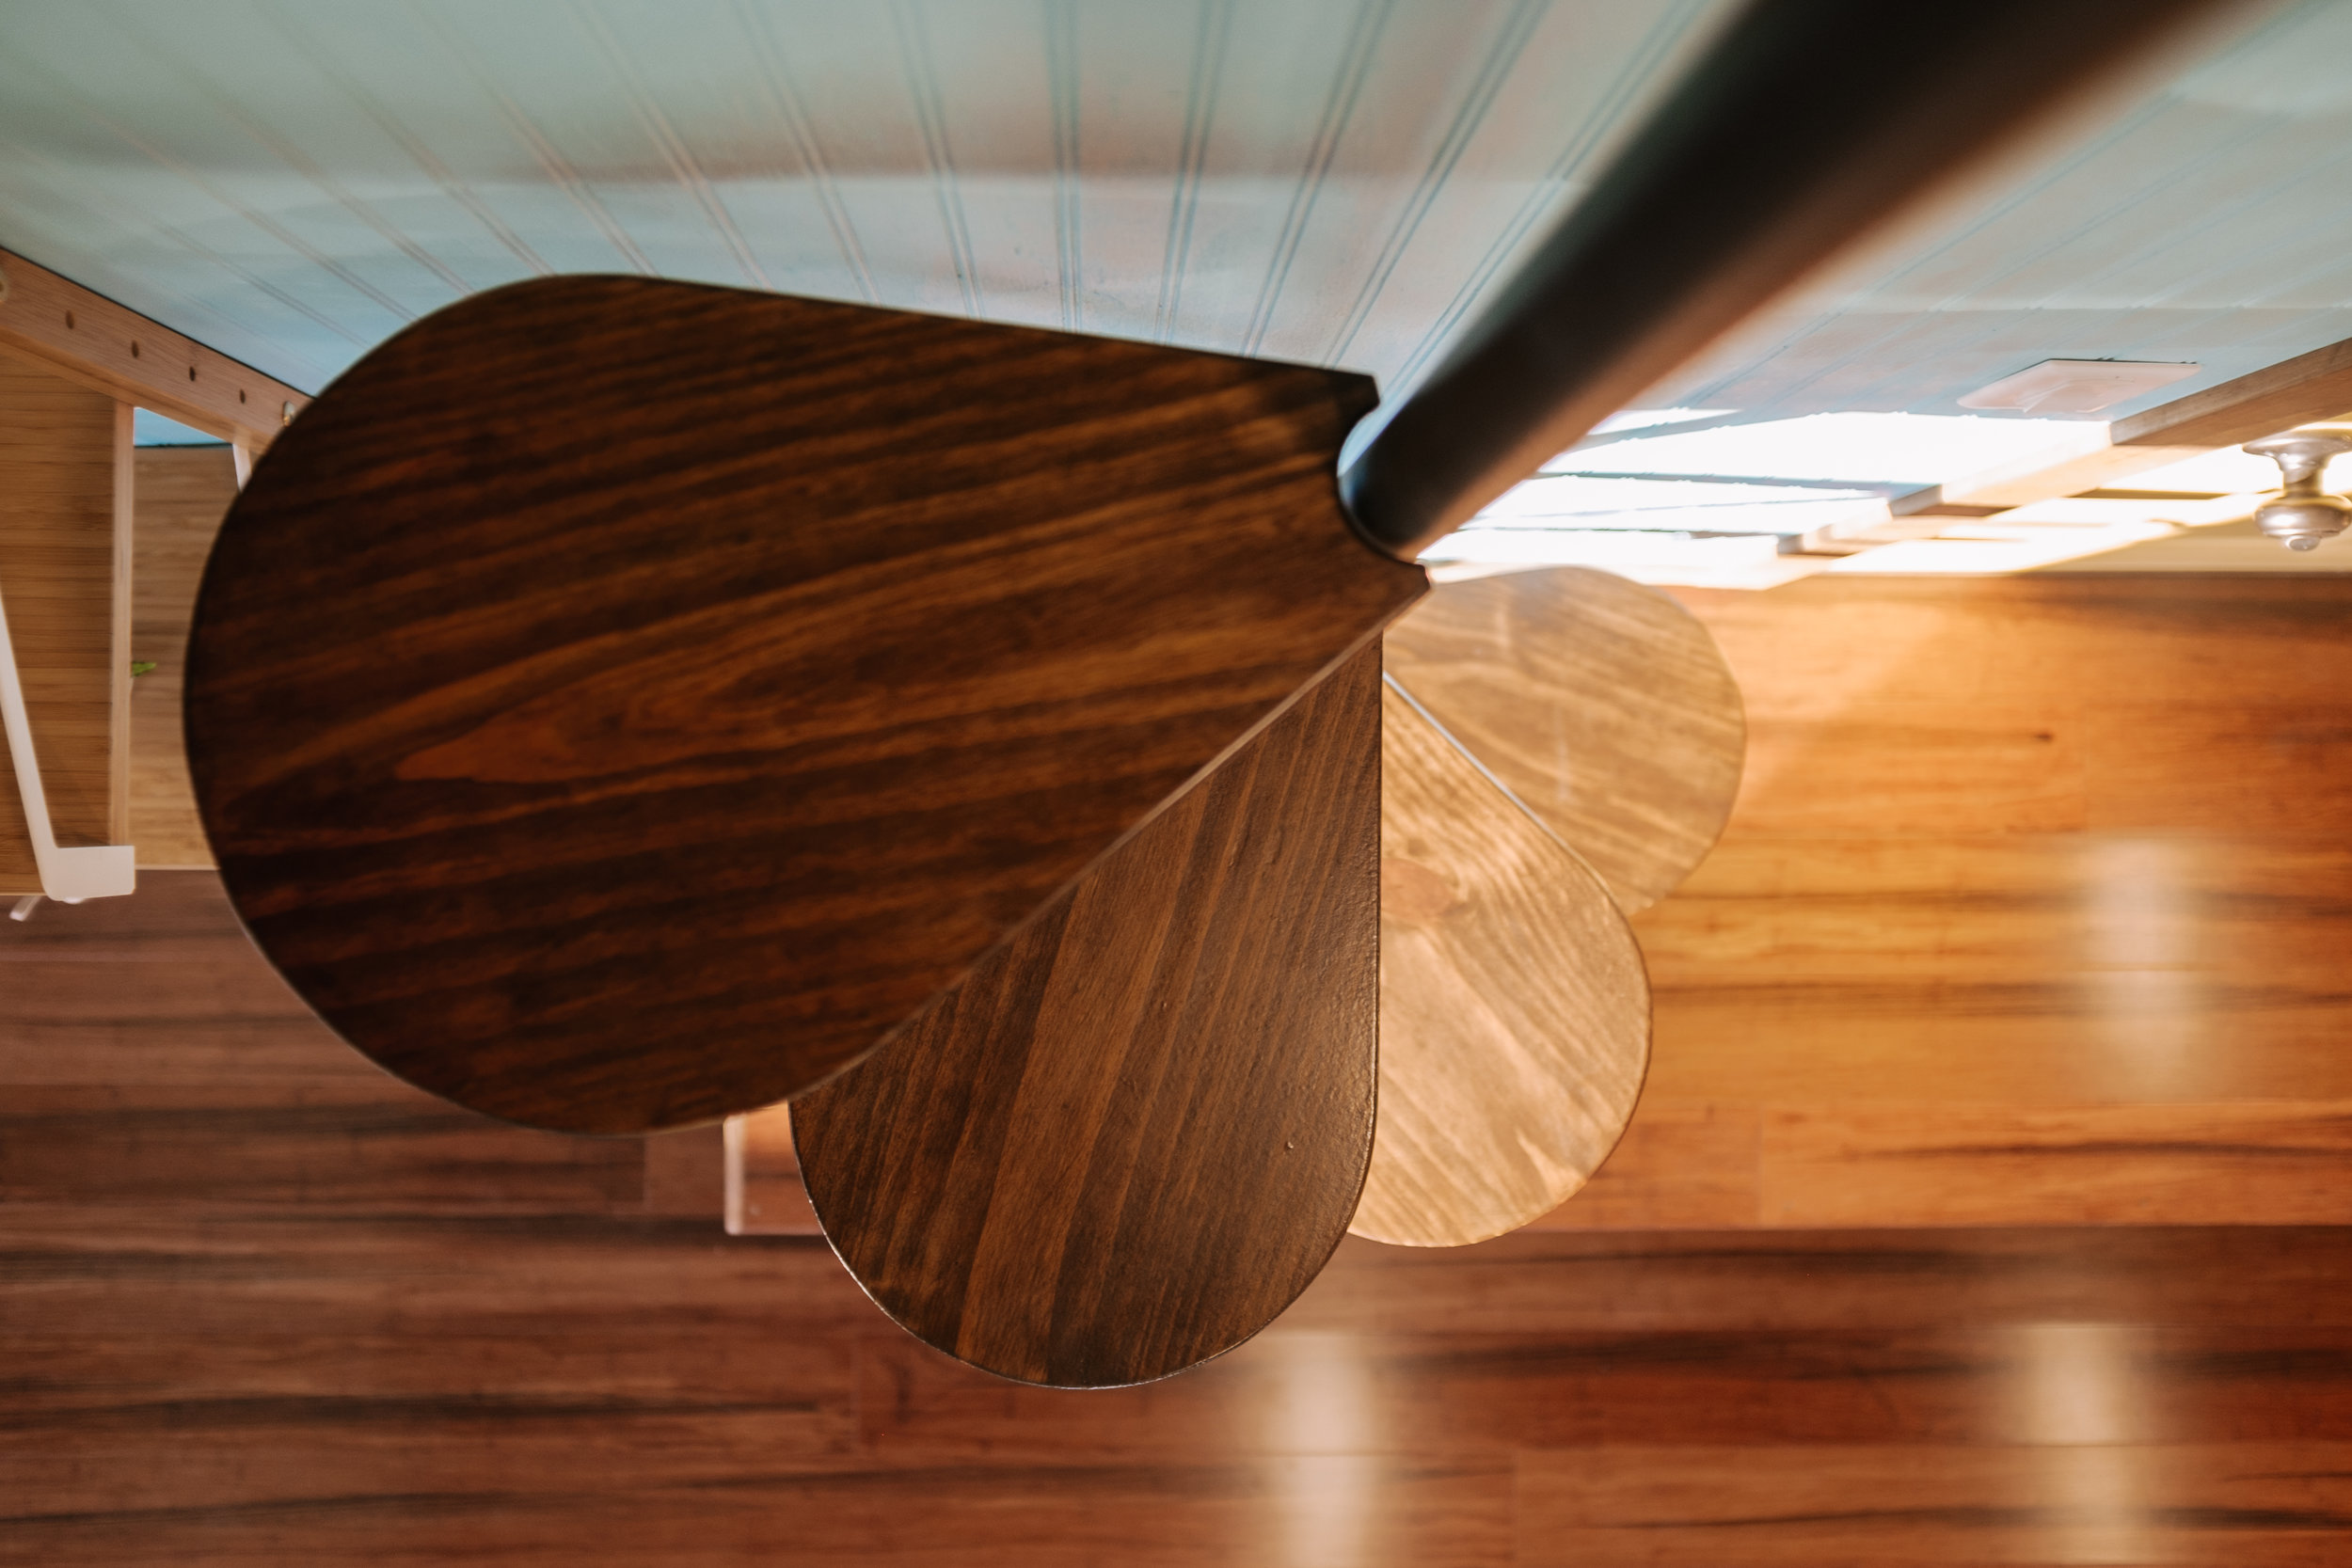 The Big Whimsy by Wind River Tiny Homes - custom lily pad spiral stairs, bamboo flooring